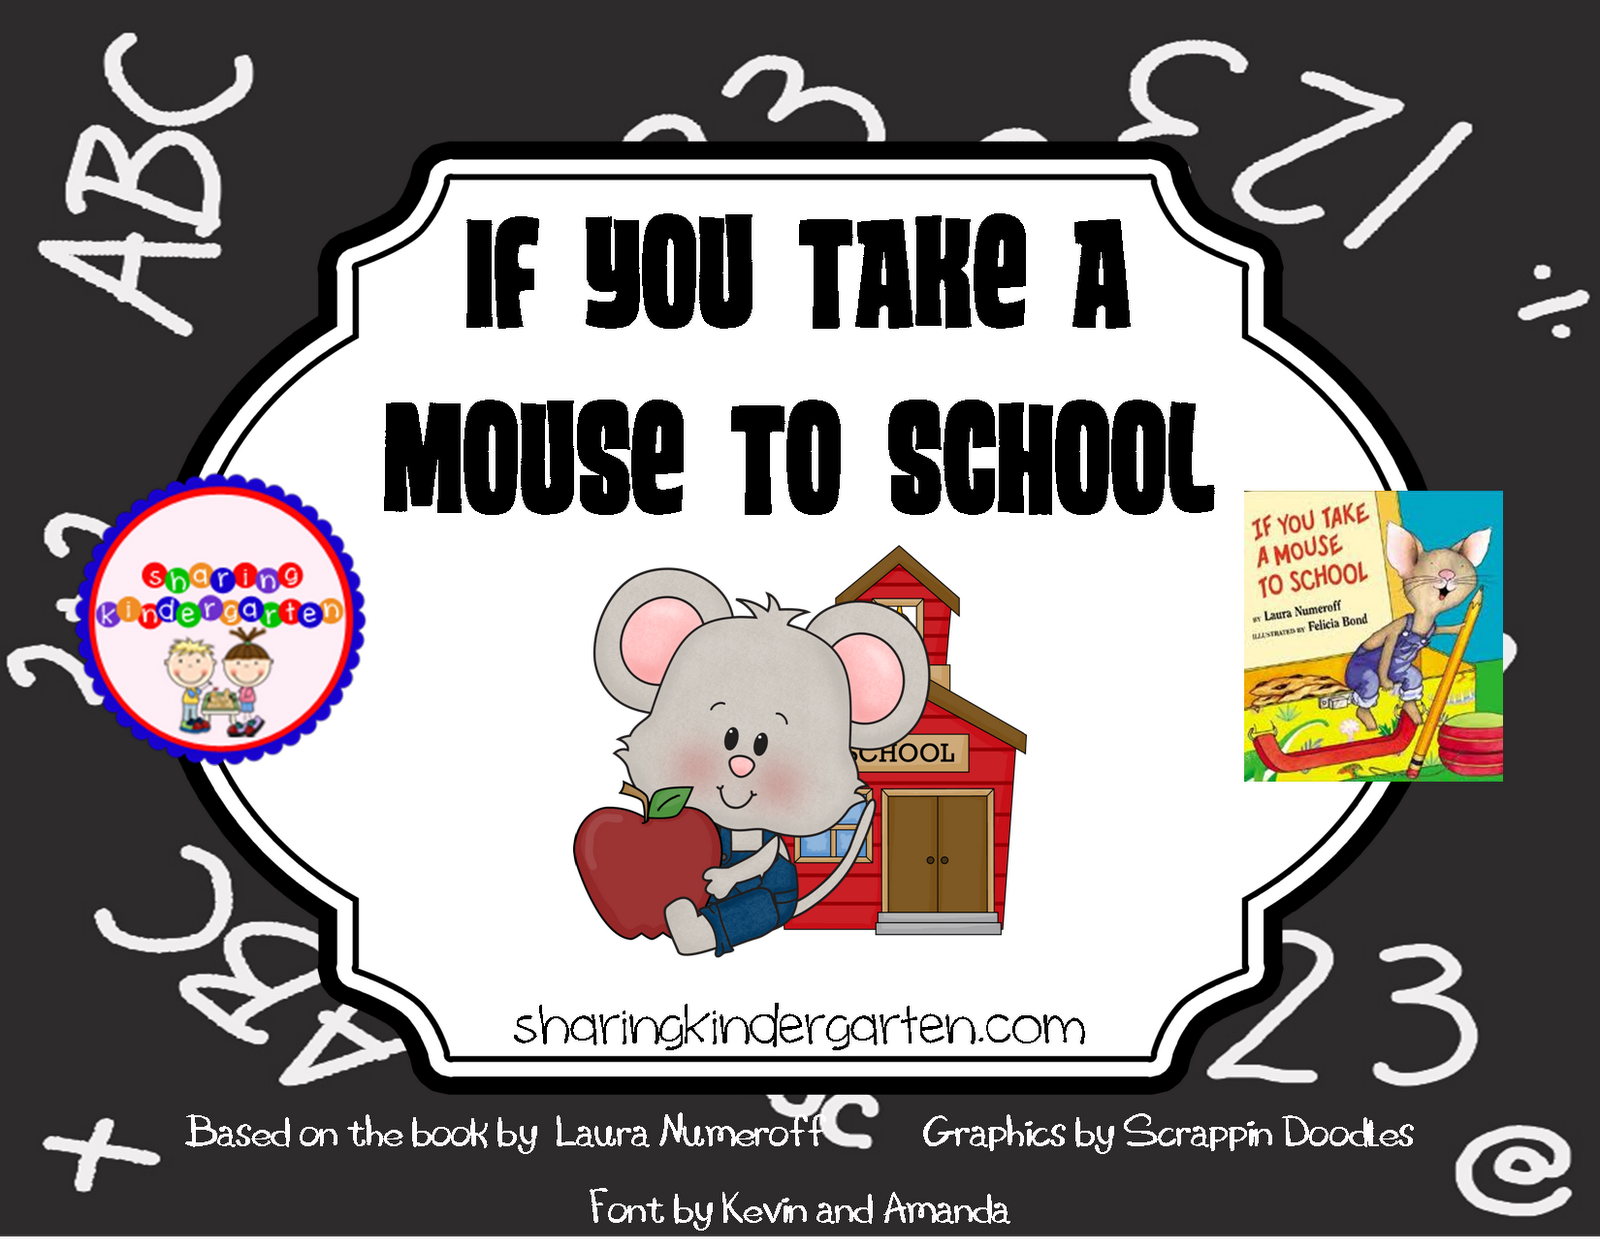 Worksheets If You Take A Mouse To School Worksheets its back to school sale time sharing kindergarten